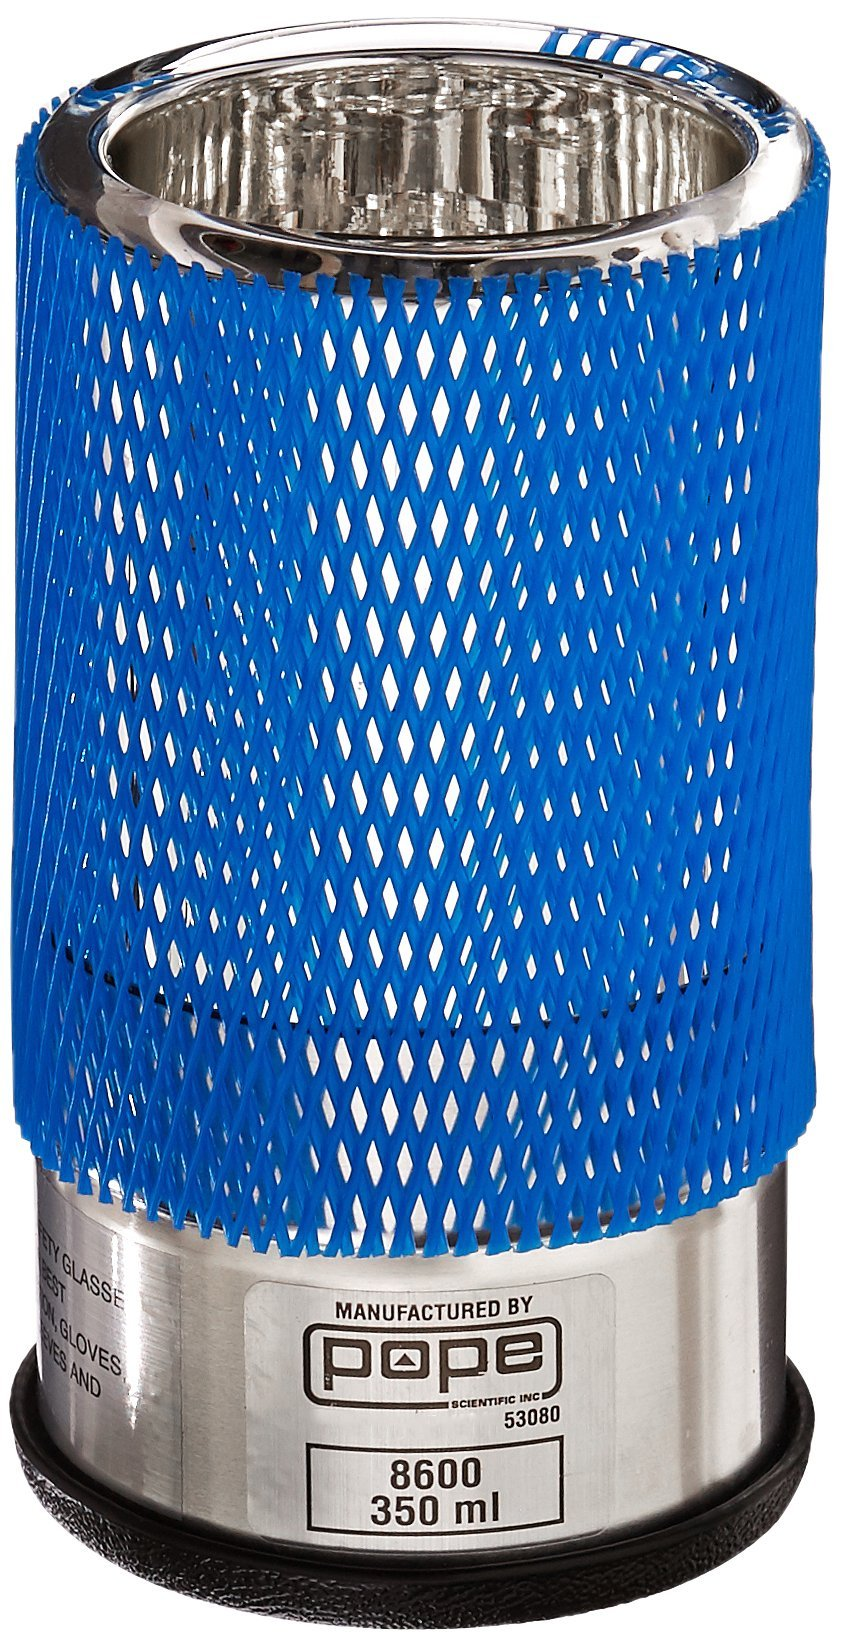 POPE SCIENTIFIC 8600 Lab Grade Standard Base Cylindrical Wide Mouth Dewar, Mesh Covering, 350 mL Volume, 70 mm ID x 86 mm OD x 157 mm H